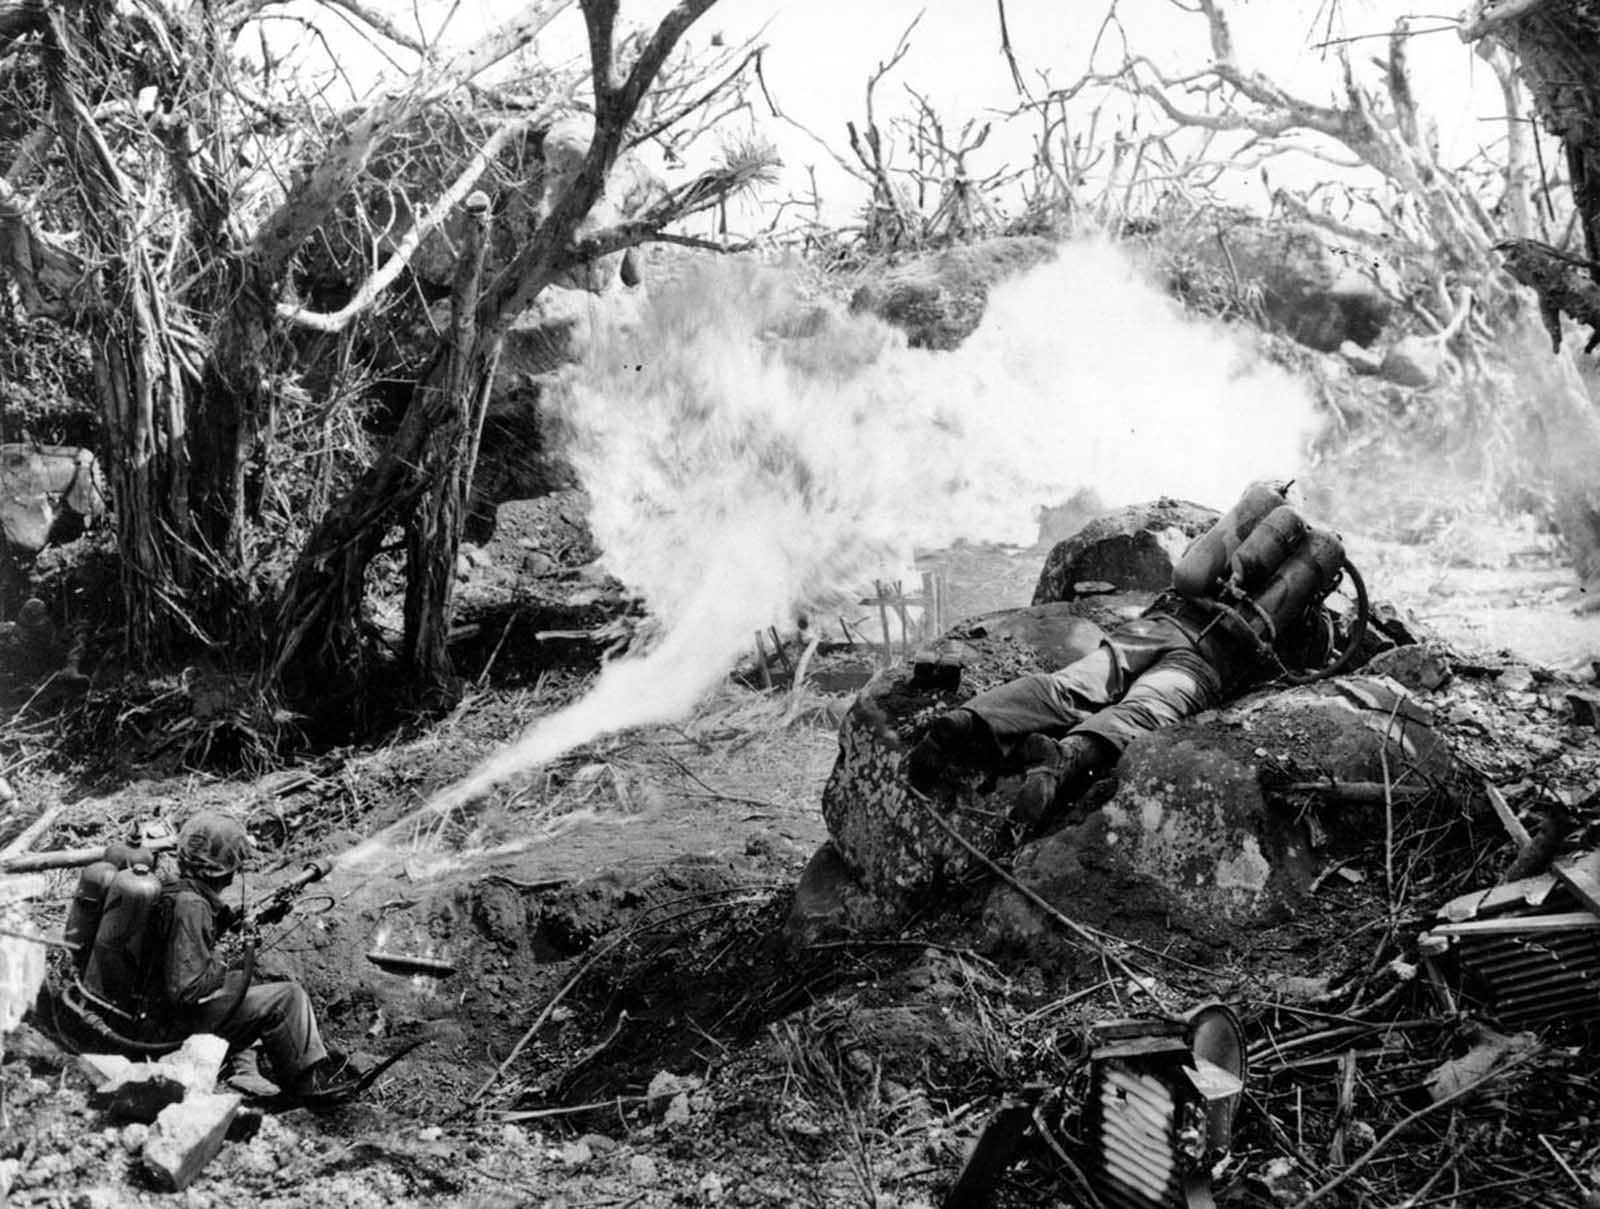 Two U.S. Marines direct flame throwers at Japanese defenses that block the way to Iwo Jima's Mount Suribachi on March 4, 1945. On the left is Pvt. Richard Klatt, of North Fond Dulac, Wisconsin, and on the right is PFC Wilfred Voegeli.